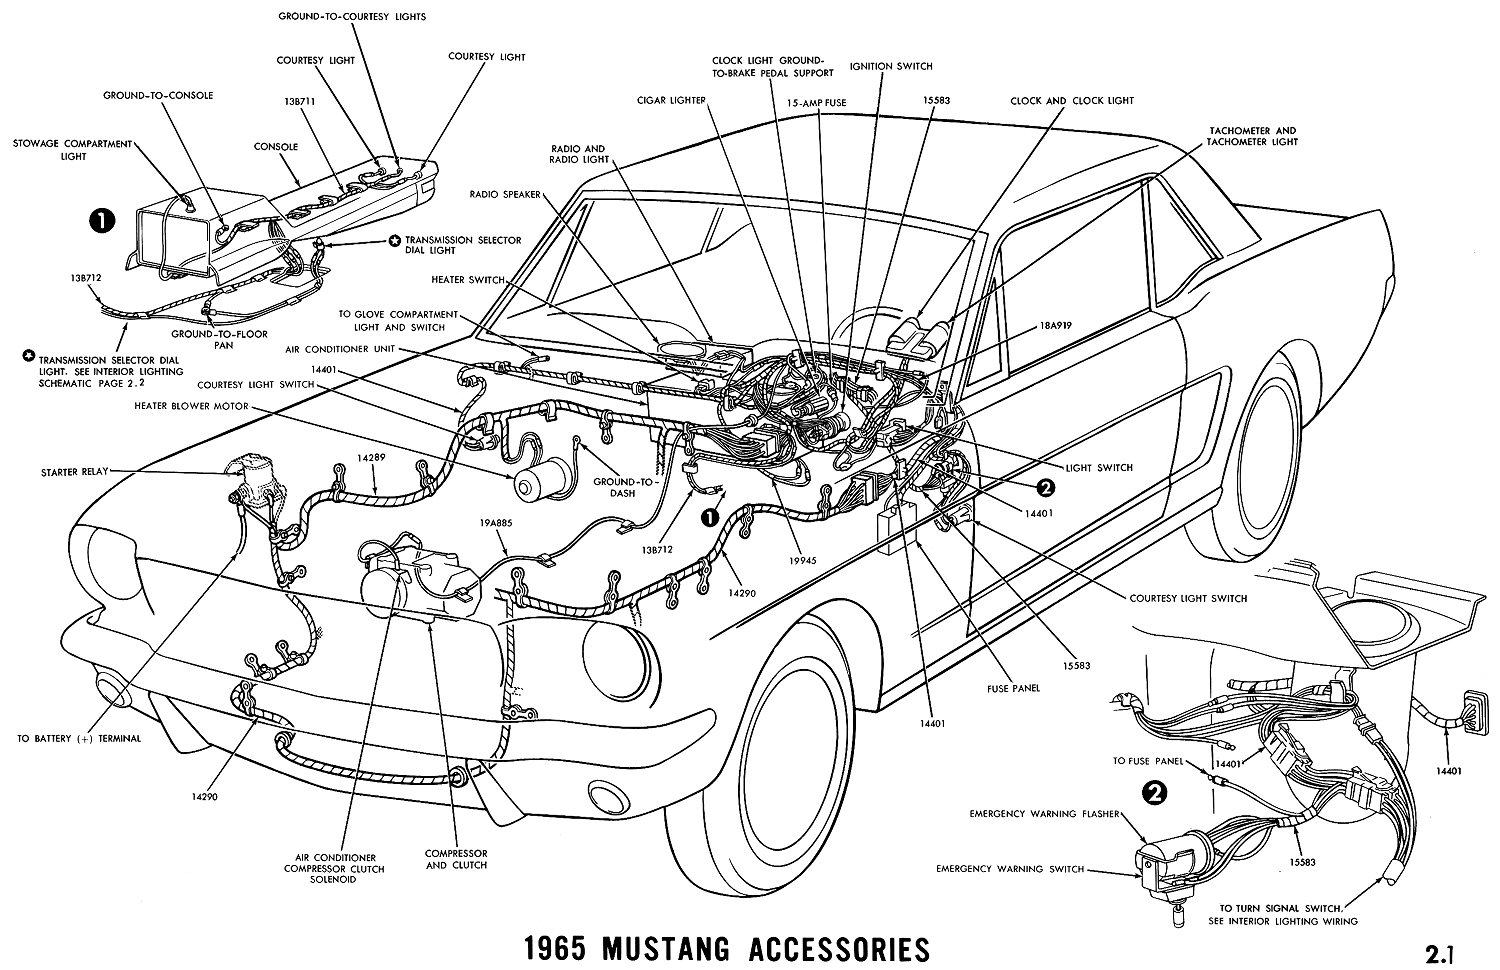 1965 Mustang Accessories Pictorial or Schematic